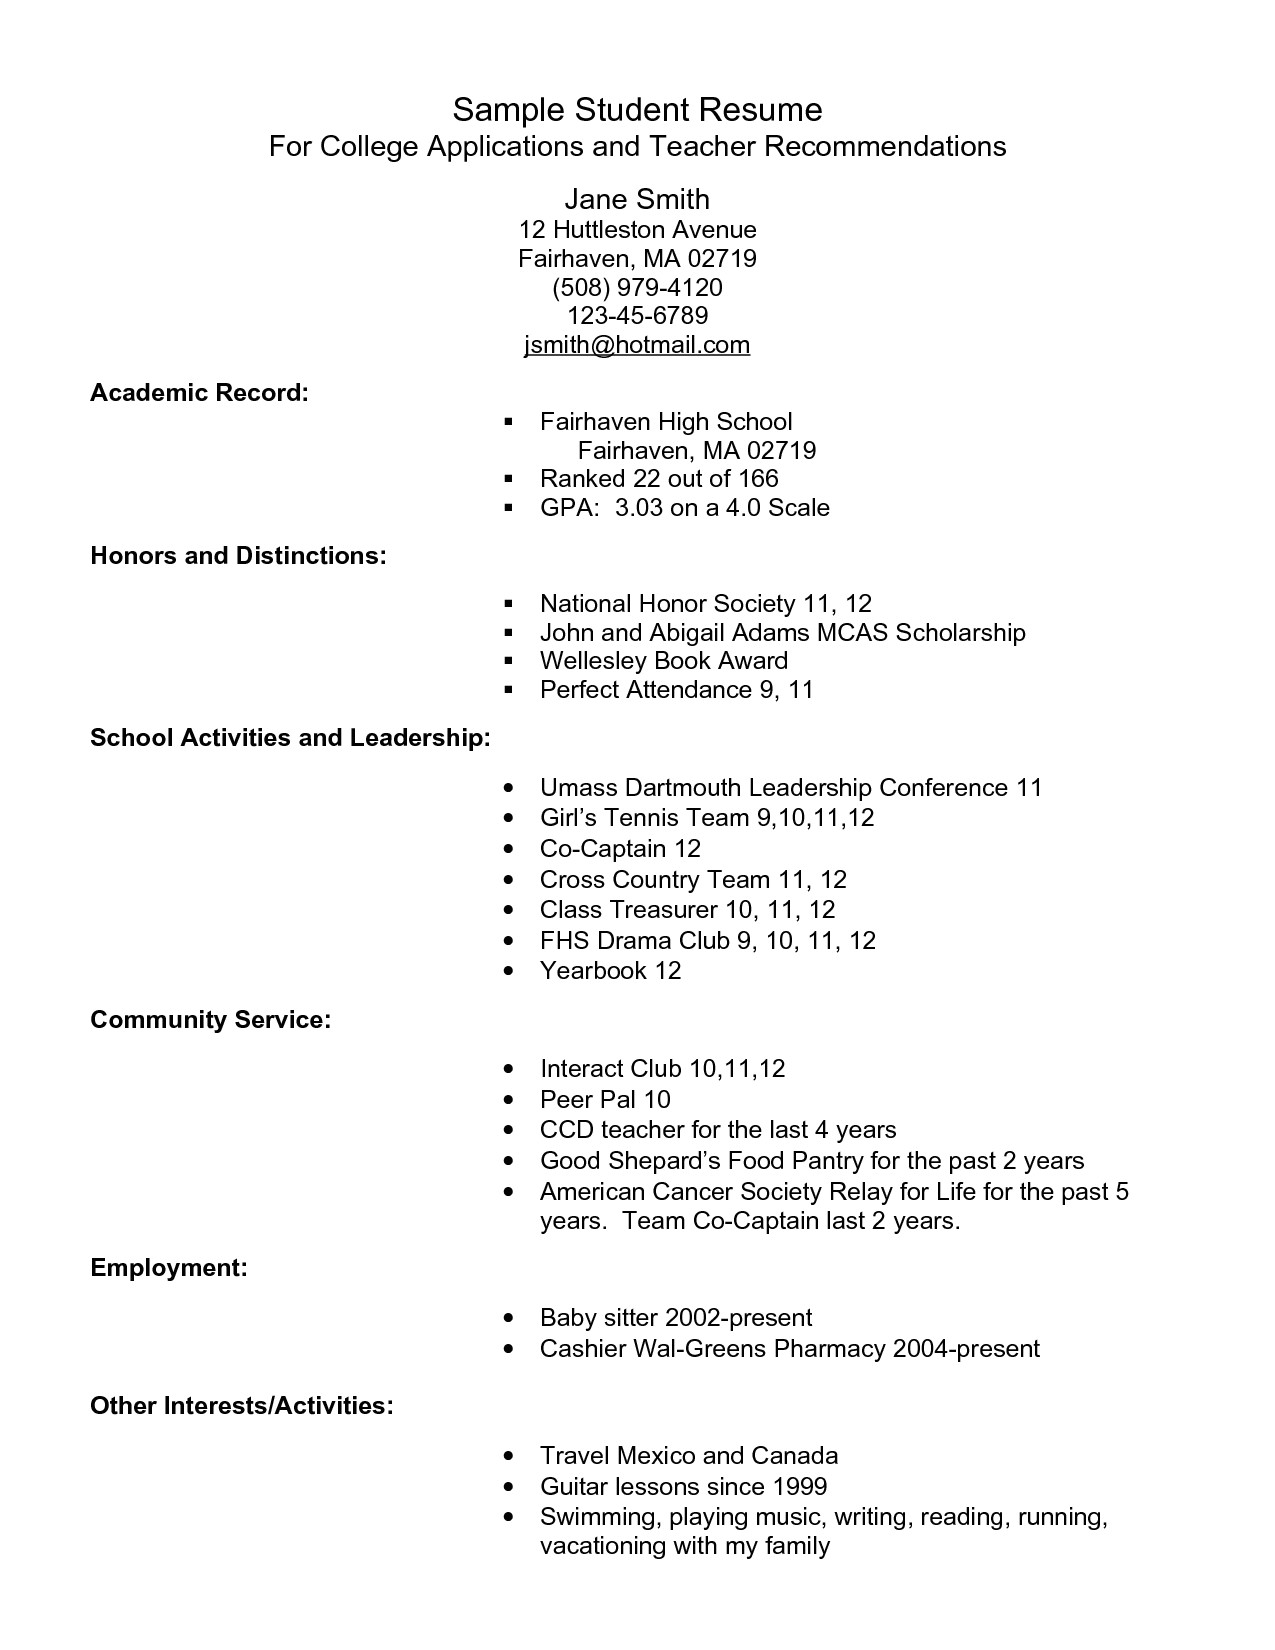 Resume Template for High School Student Applying to College Example Resume for High School Students for College